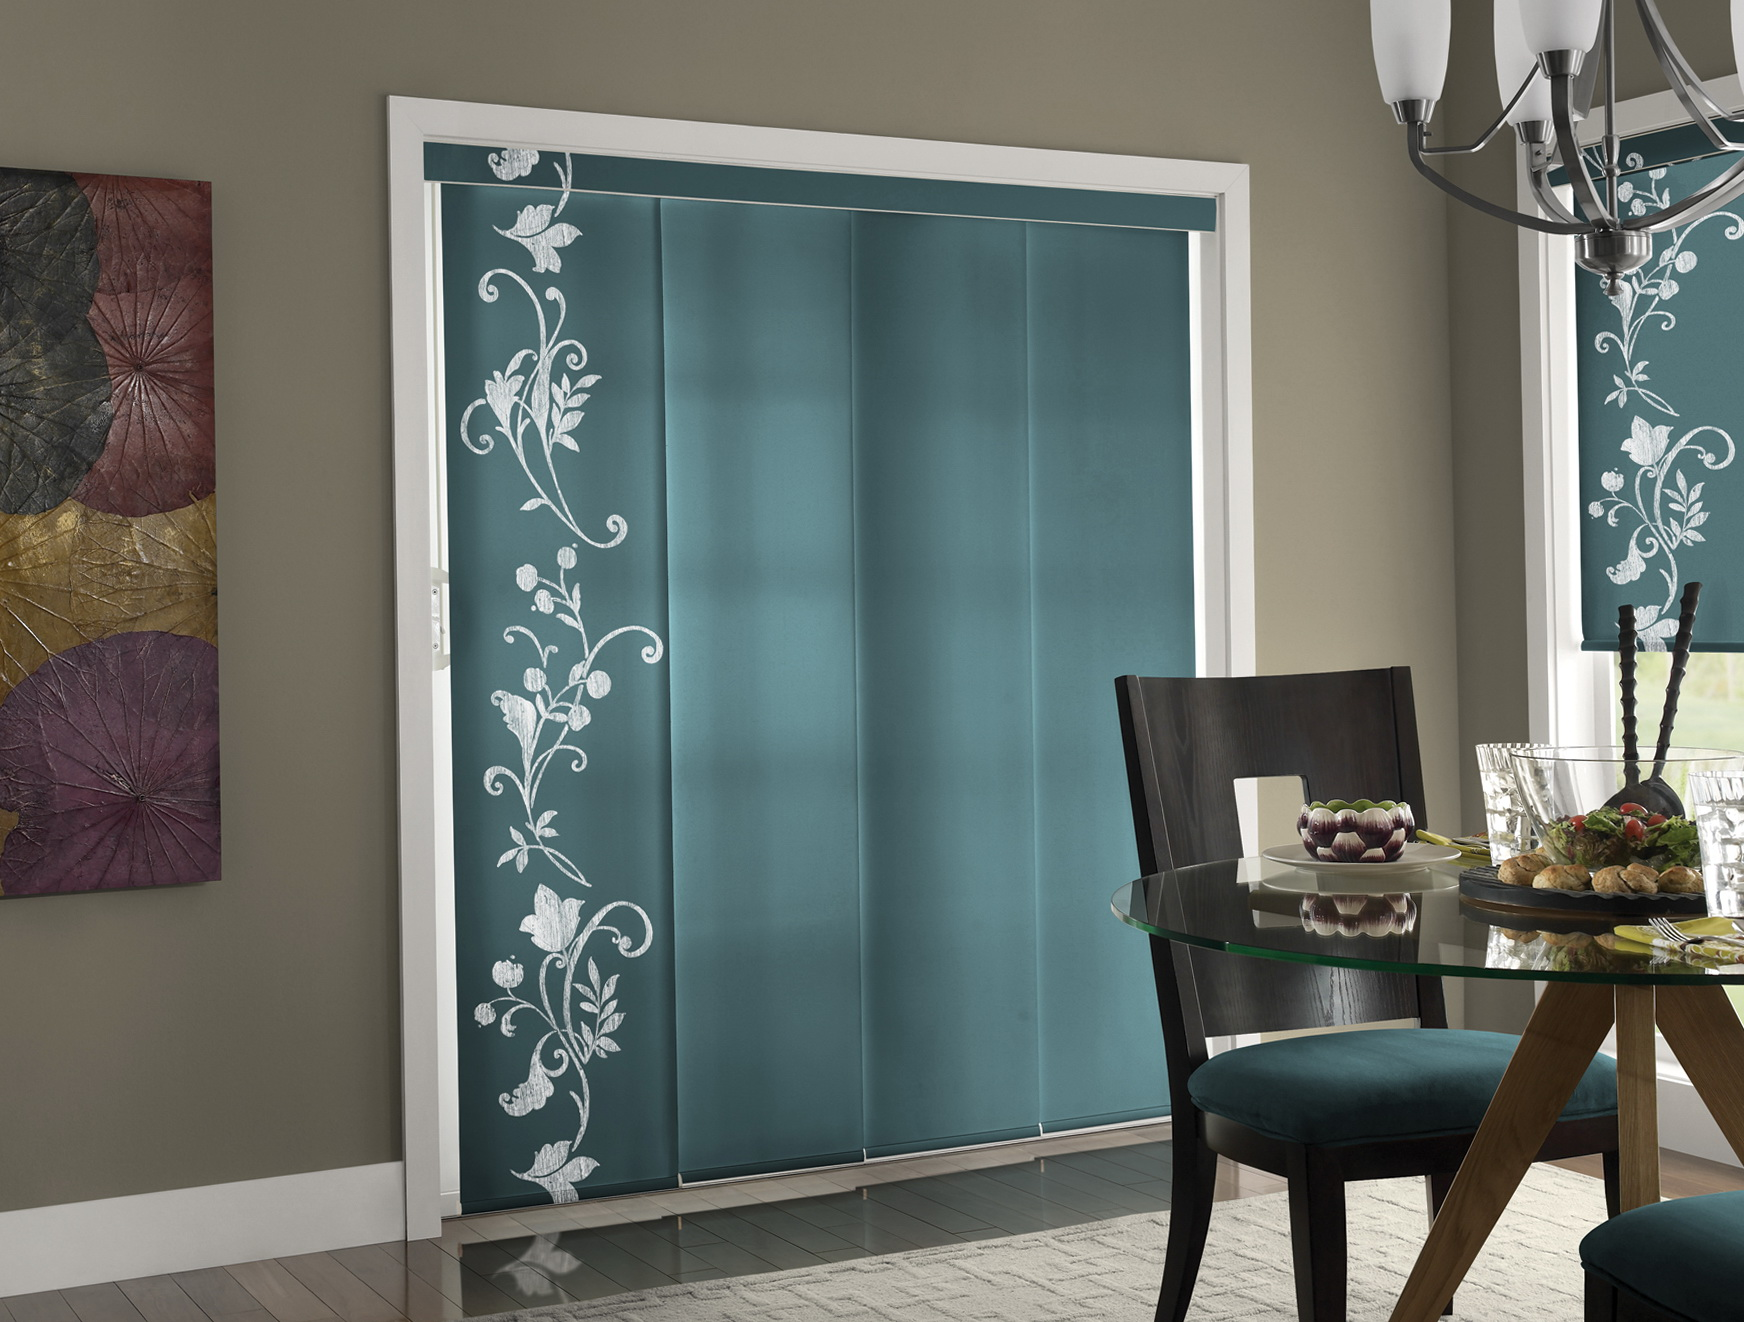 Blinds Or Curtains For Sliding Doors Home Design Ideas